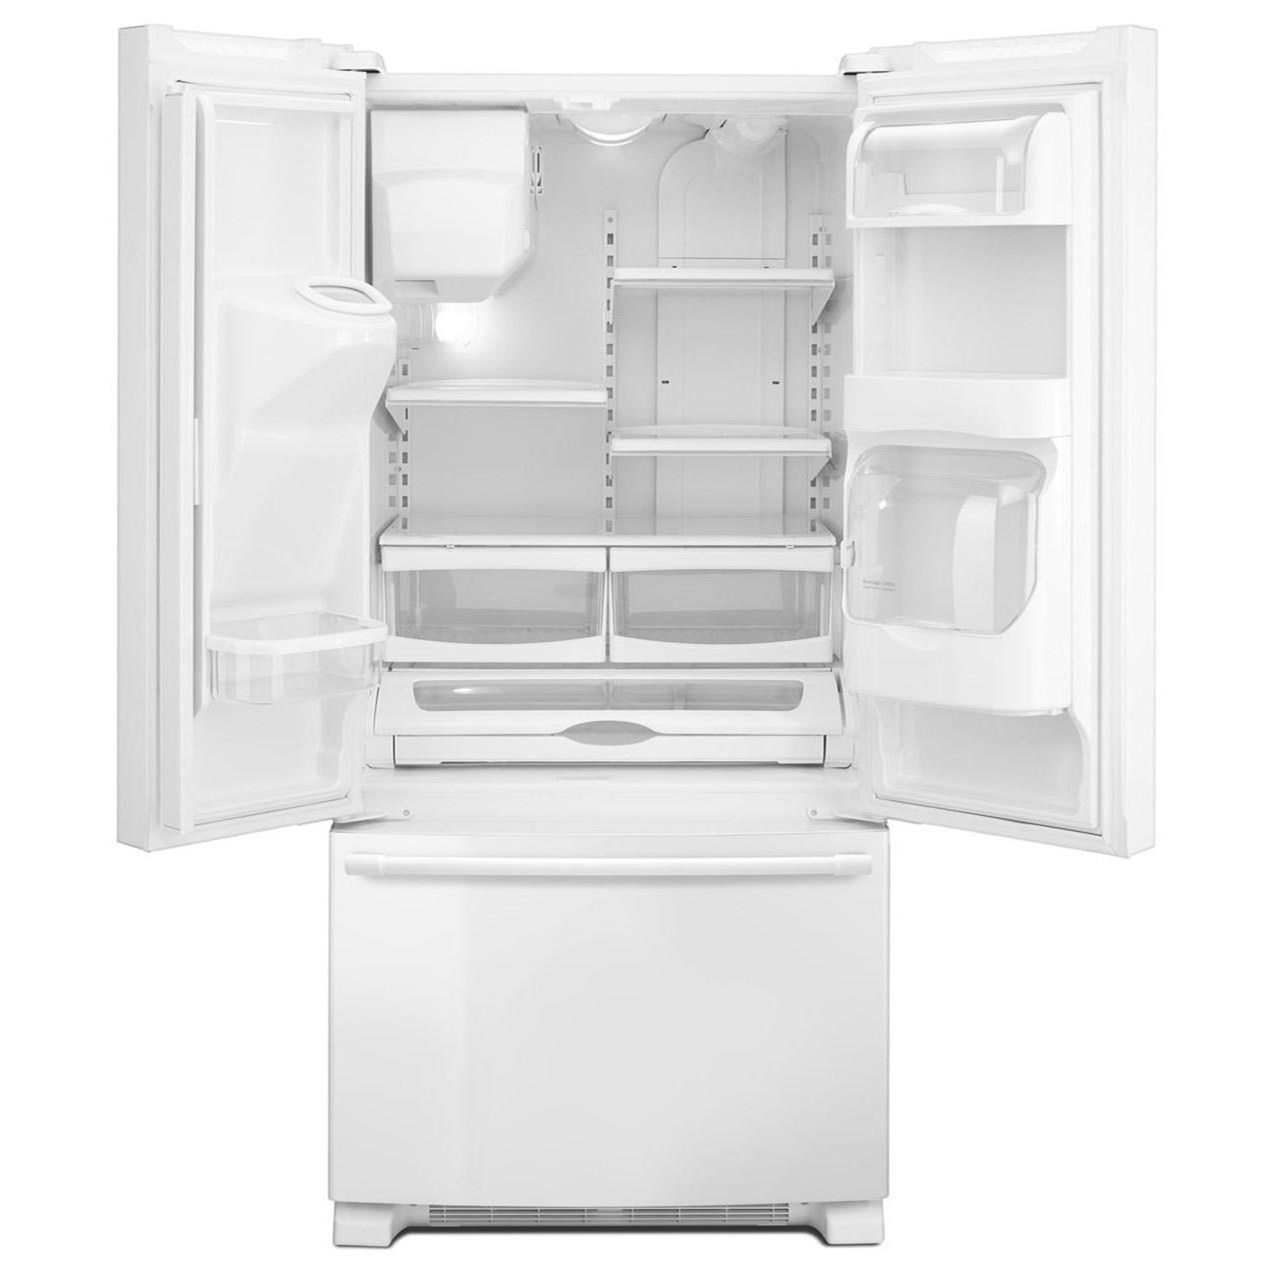 Beautiful Shown In: Maytag Maytag French Door Refrigerators 33  Inch Wide French Door  Refrigerator With Beverage Chiller™ Compartment   22 Cu. Ft.